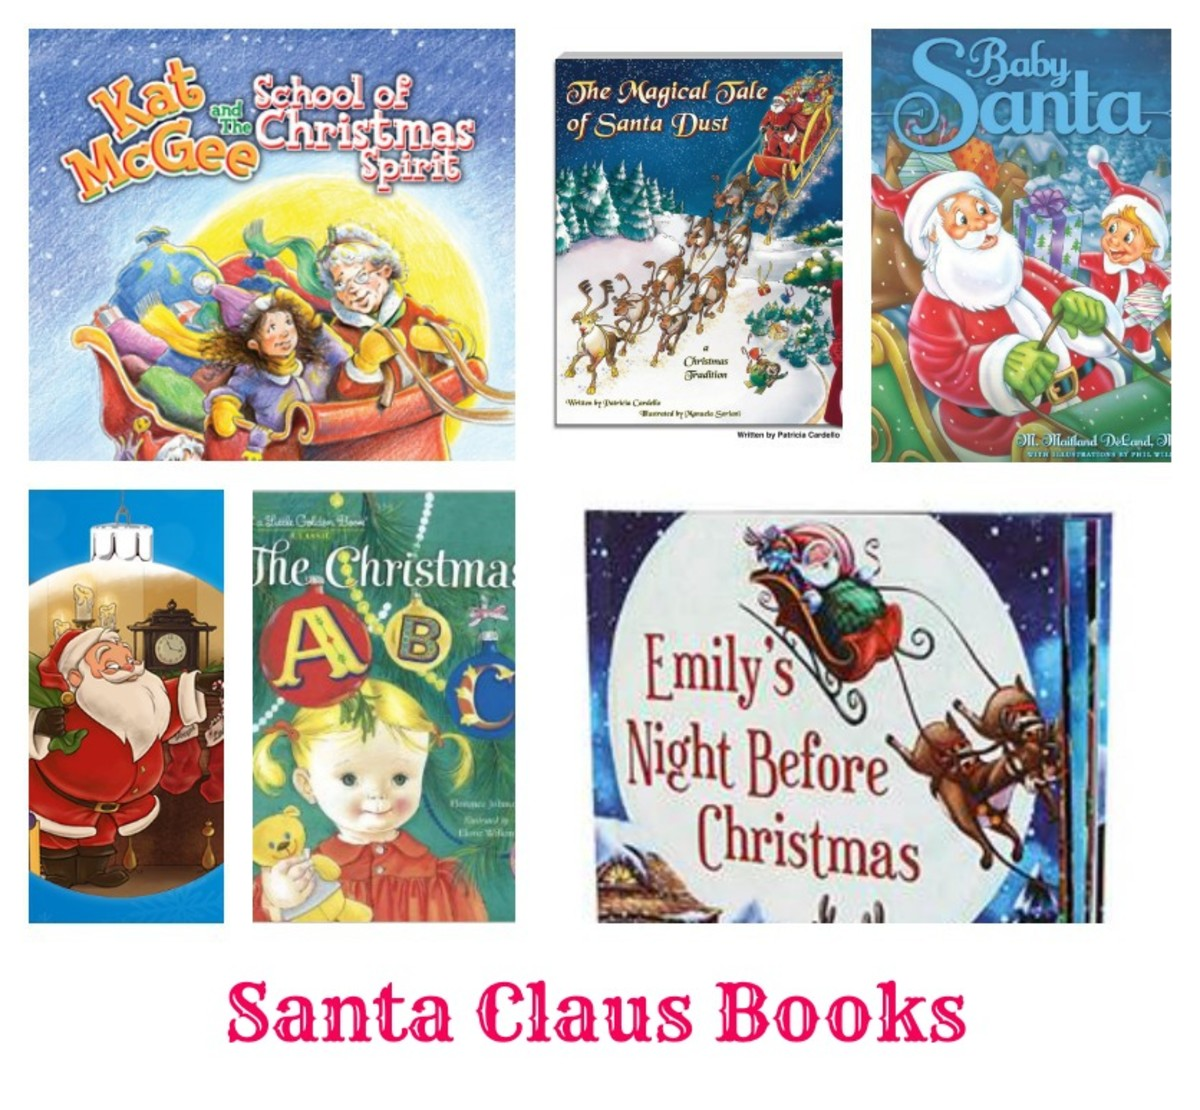 Santa Claus Books